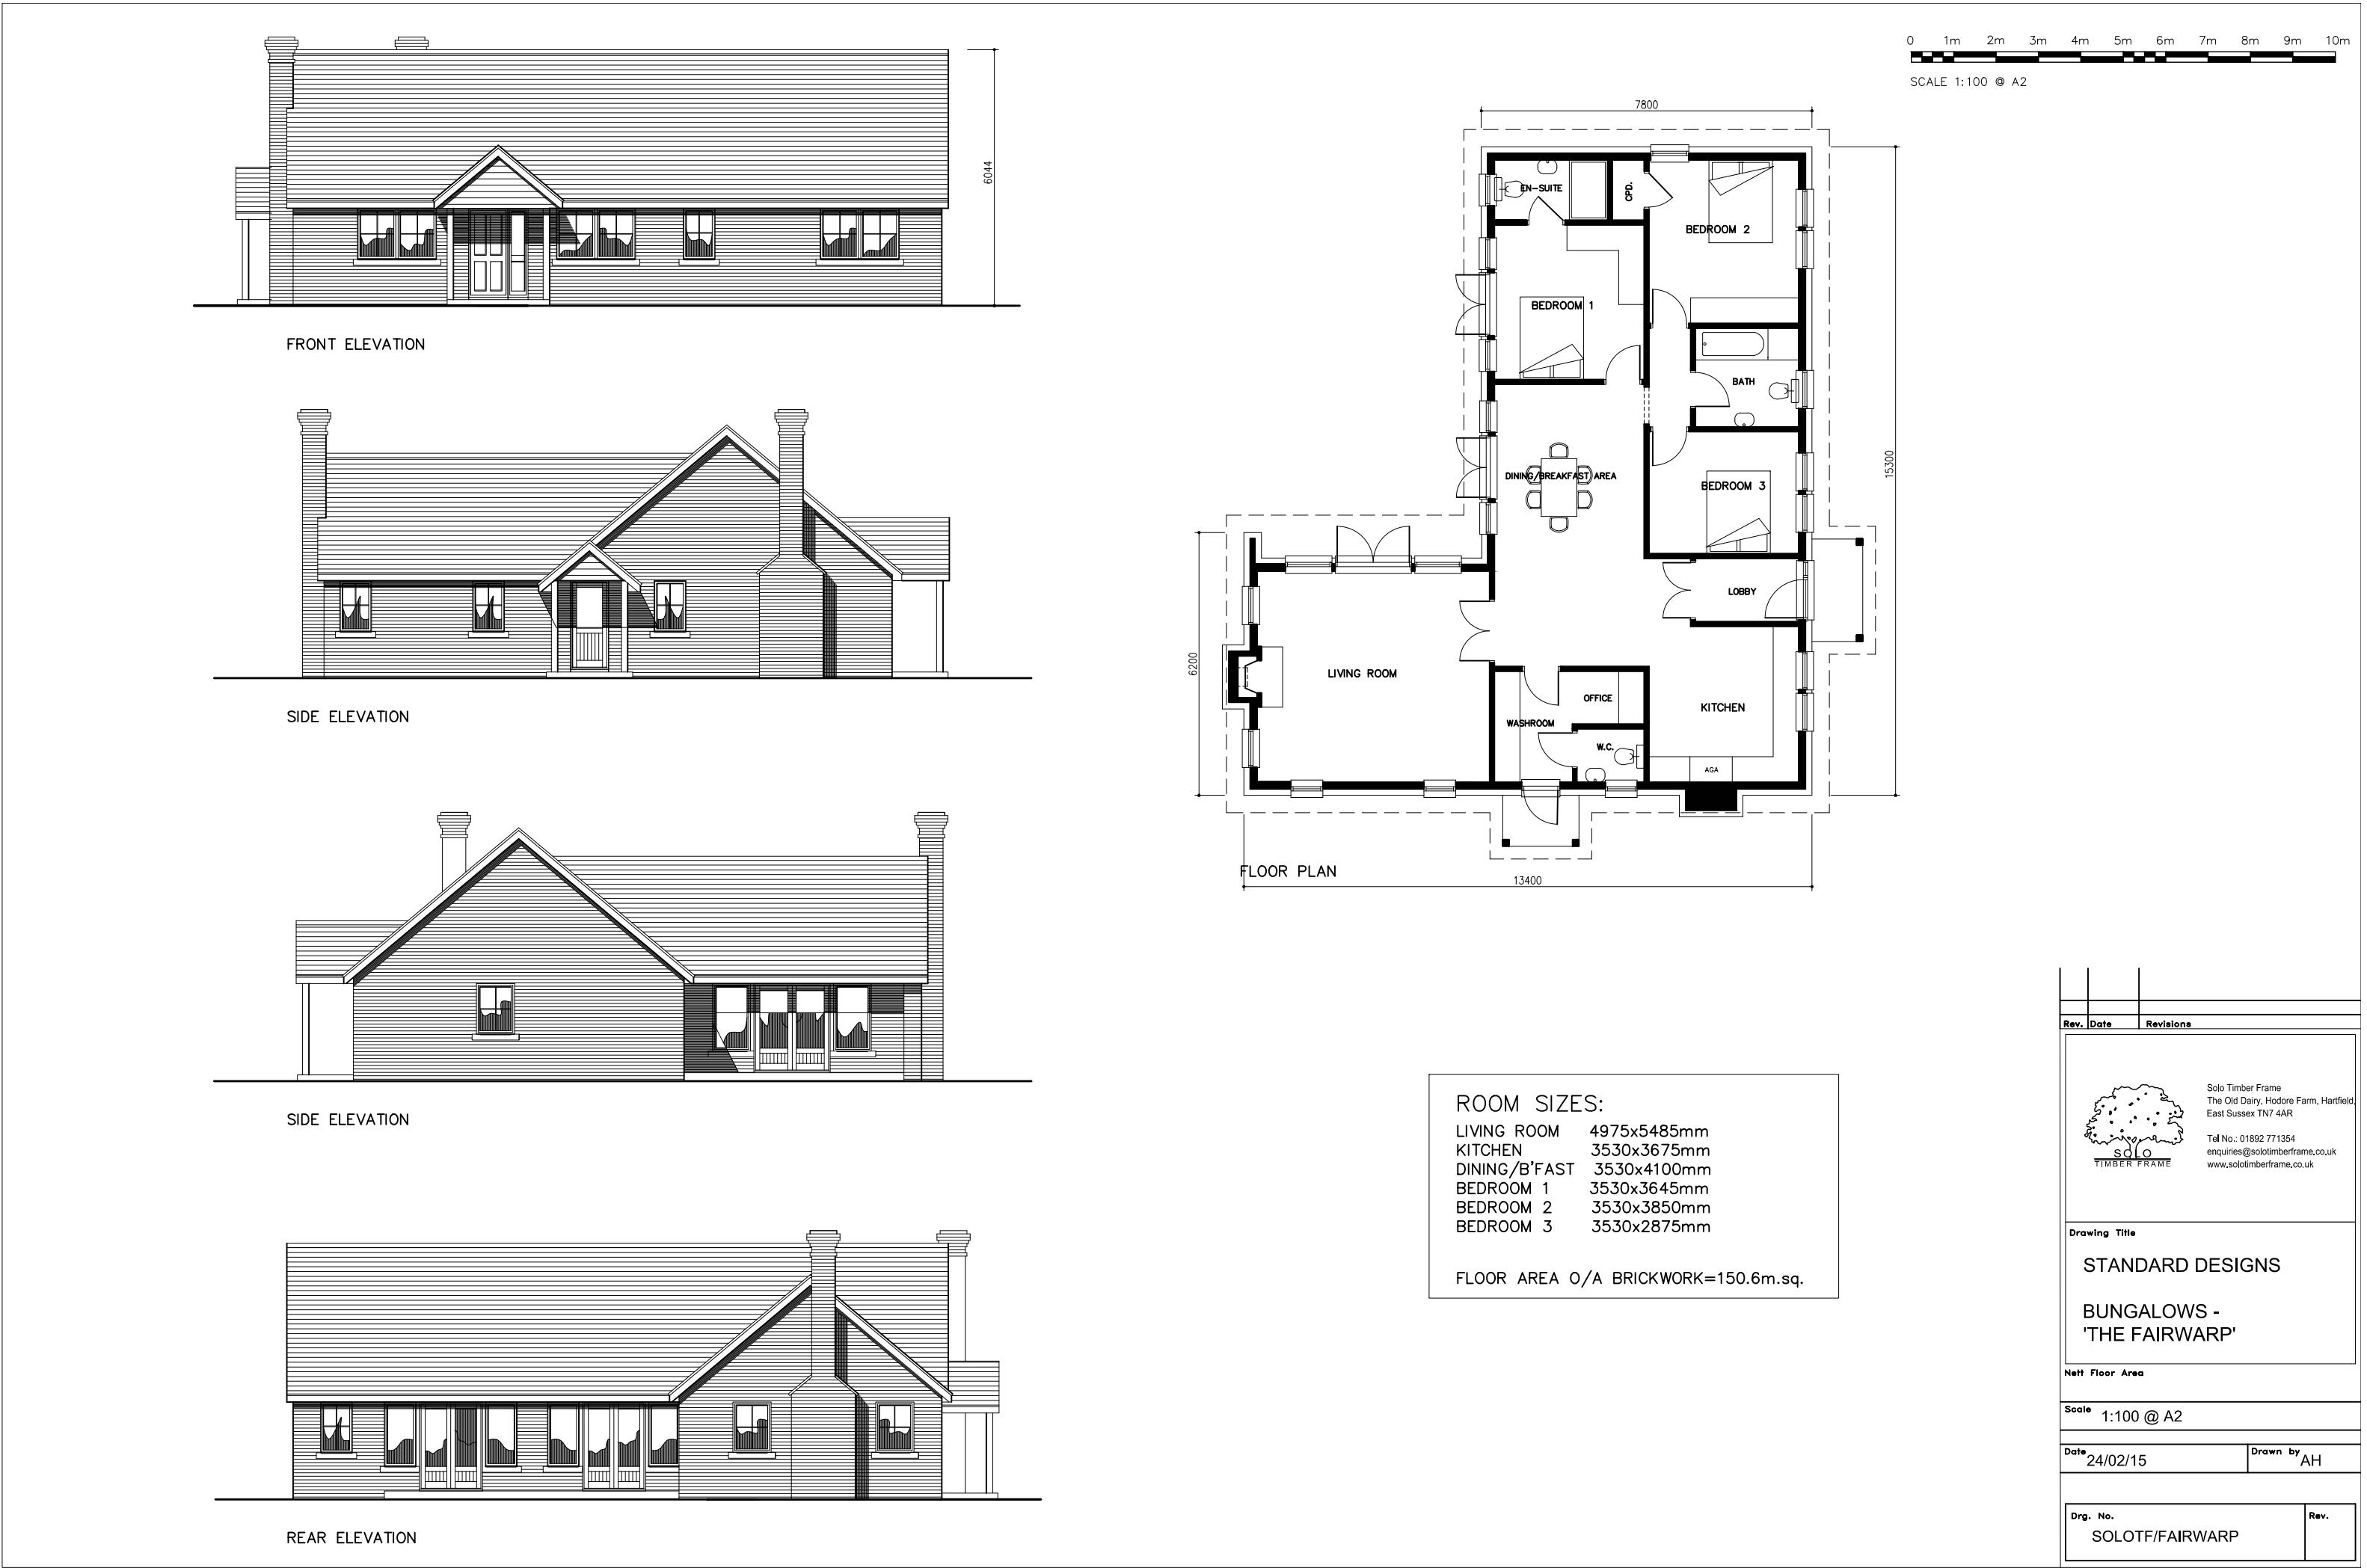 Fairwarp 3 Bedroom Bungalow Design Designs Solo Timber Frame